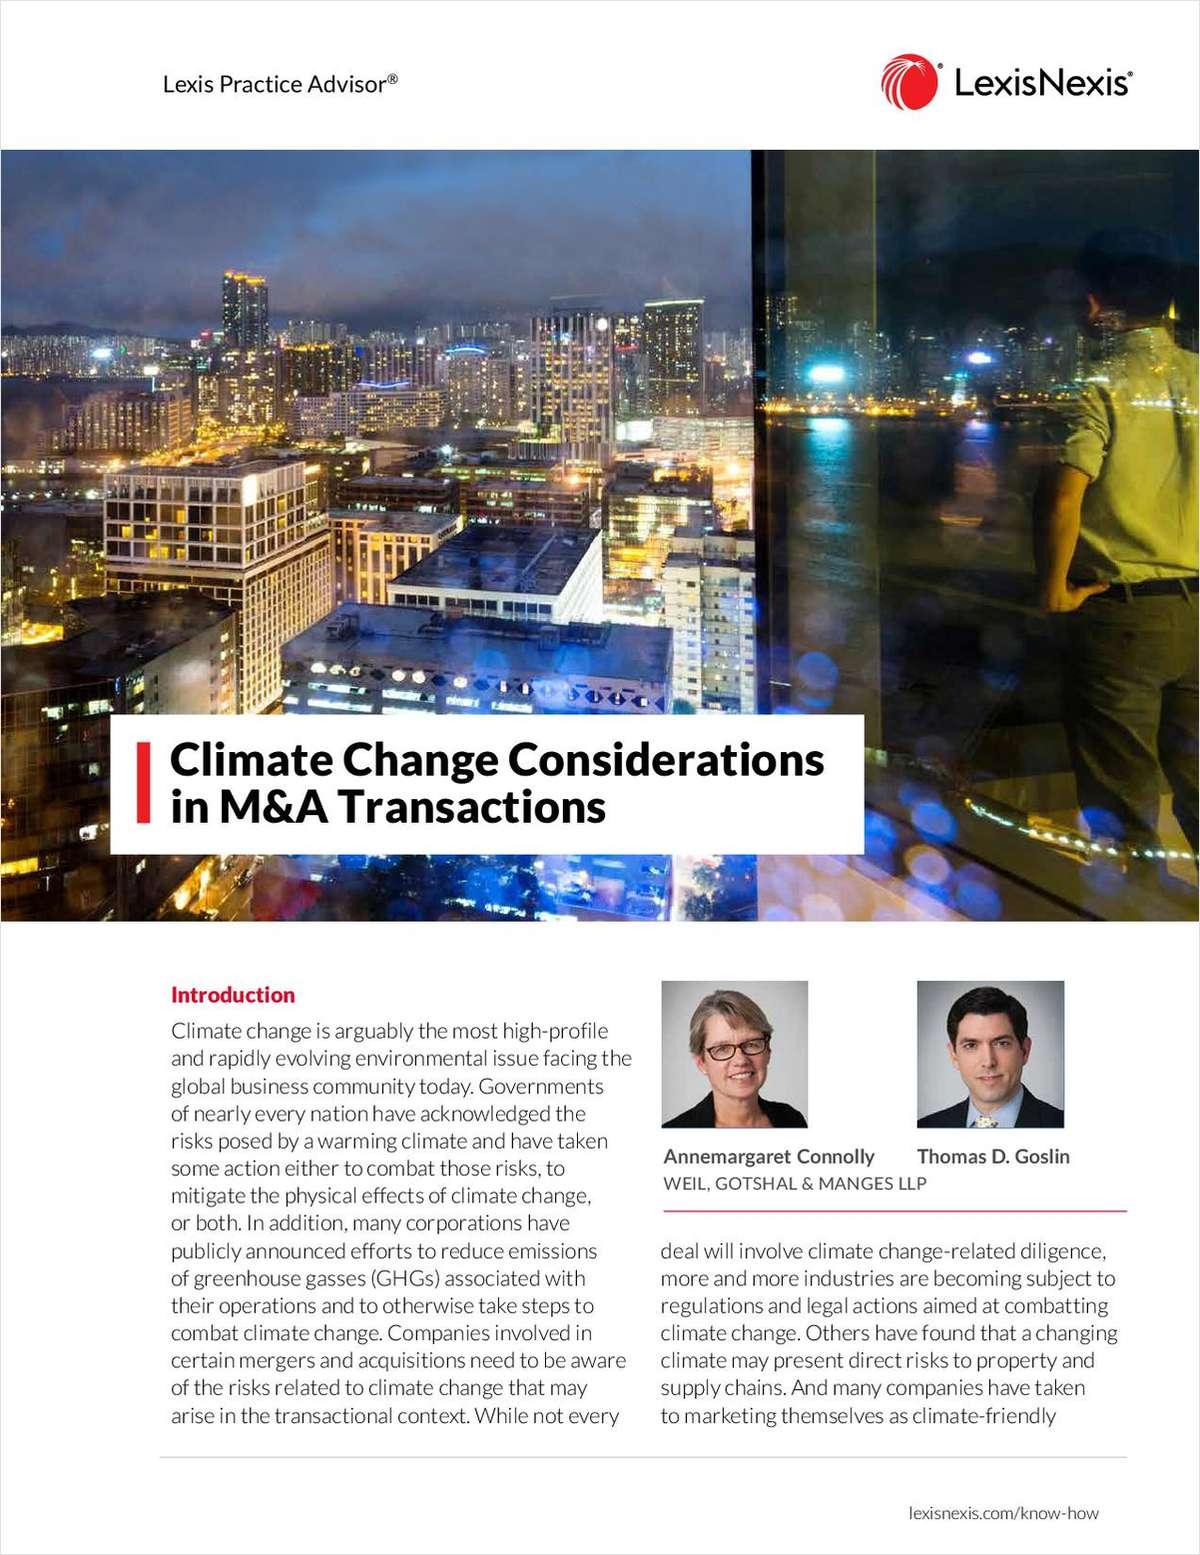 Climate Change Considerations in M&A Transactions